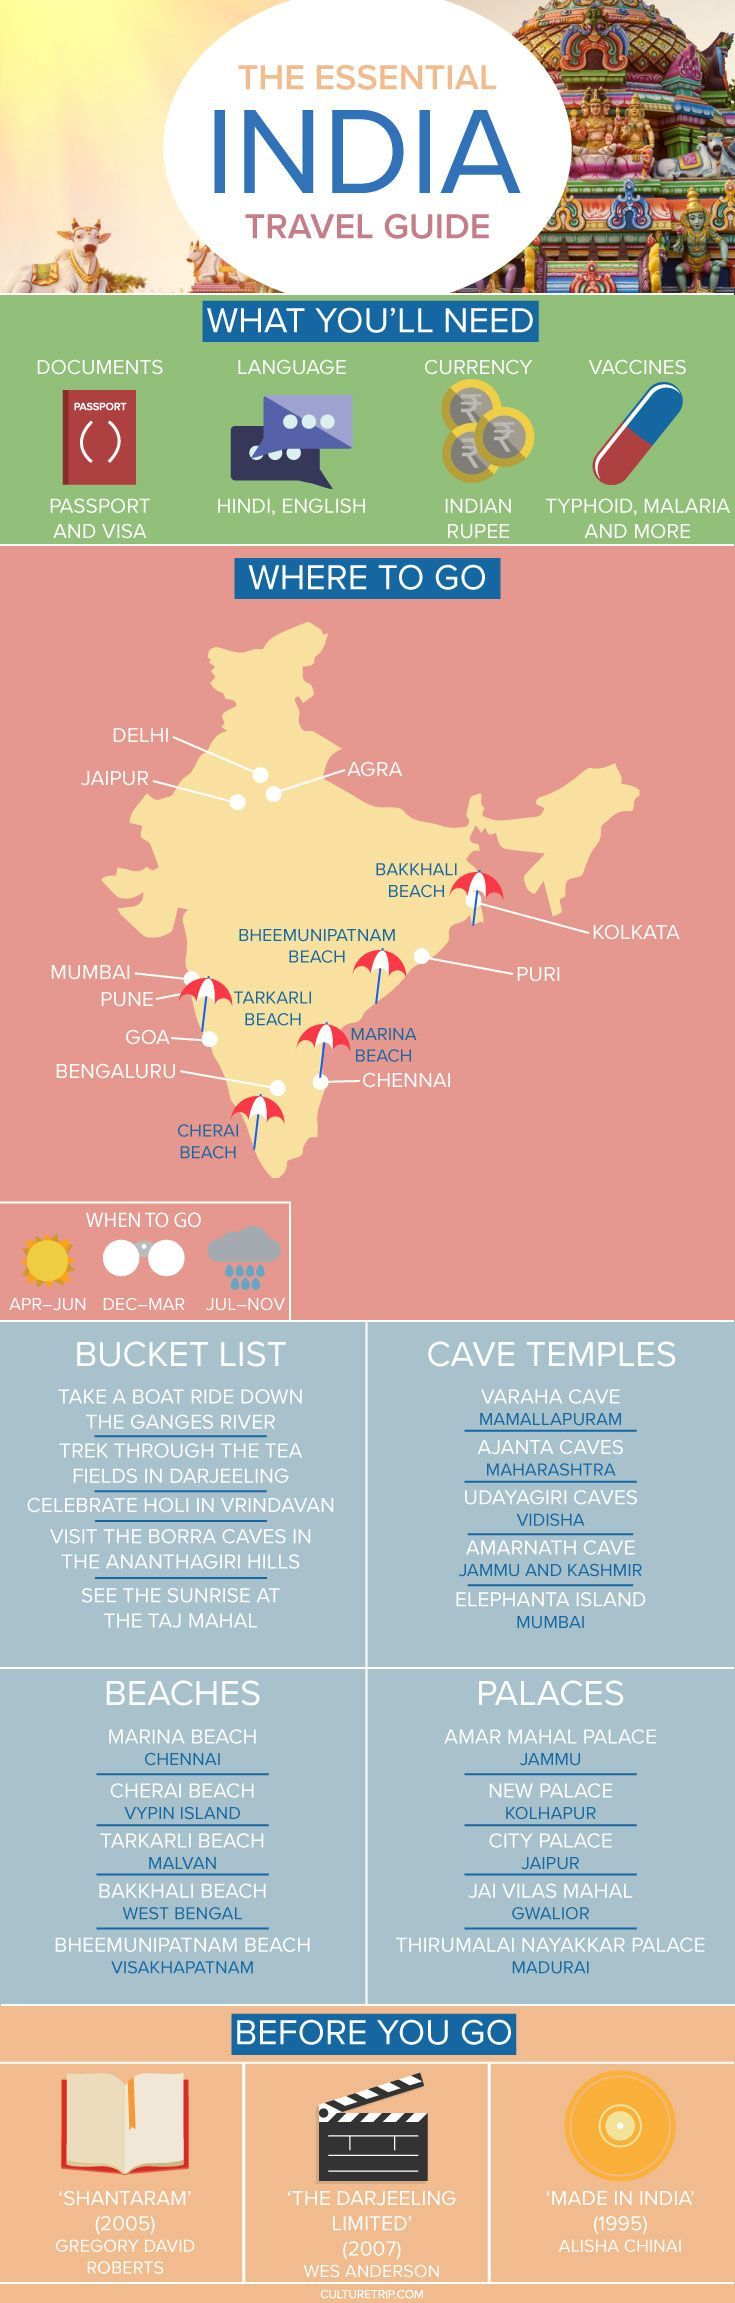 The Essential Travel Guide to India (Infographic)|Pinterest: @theculturetrip